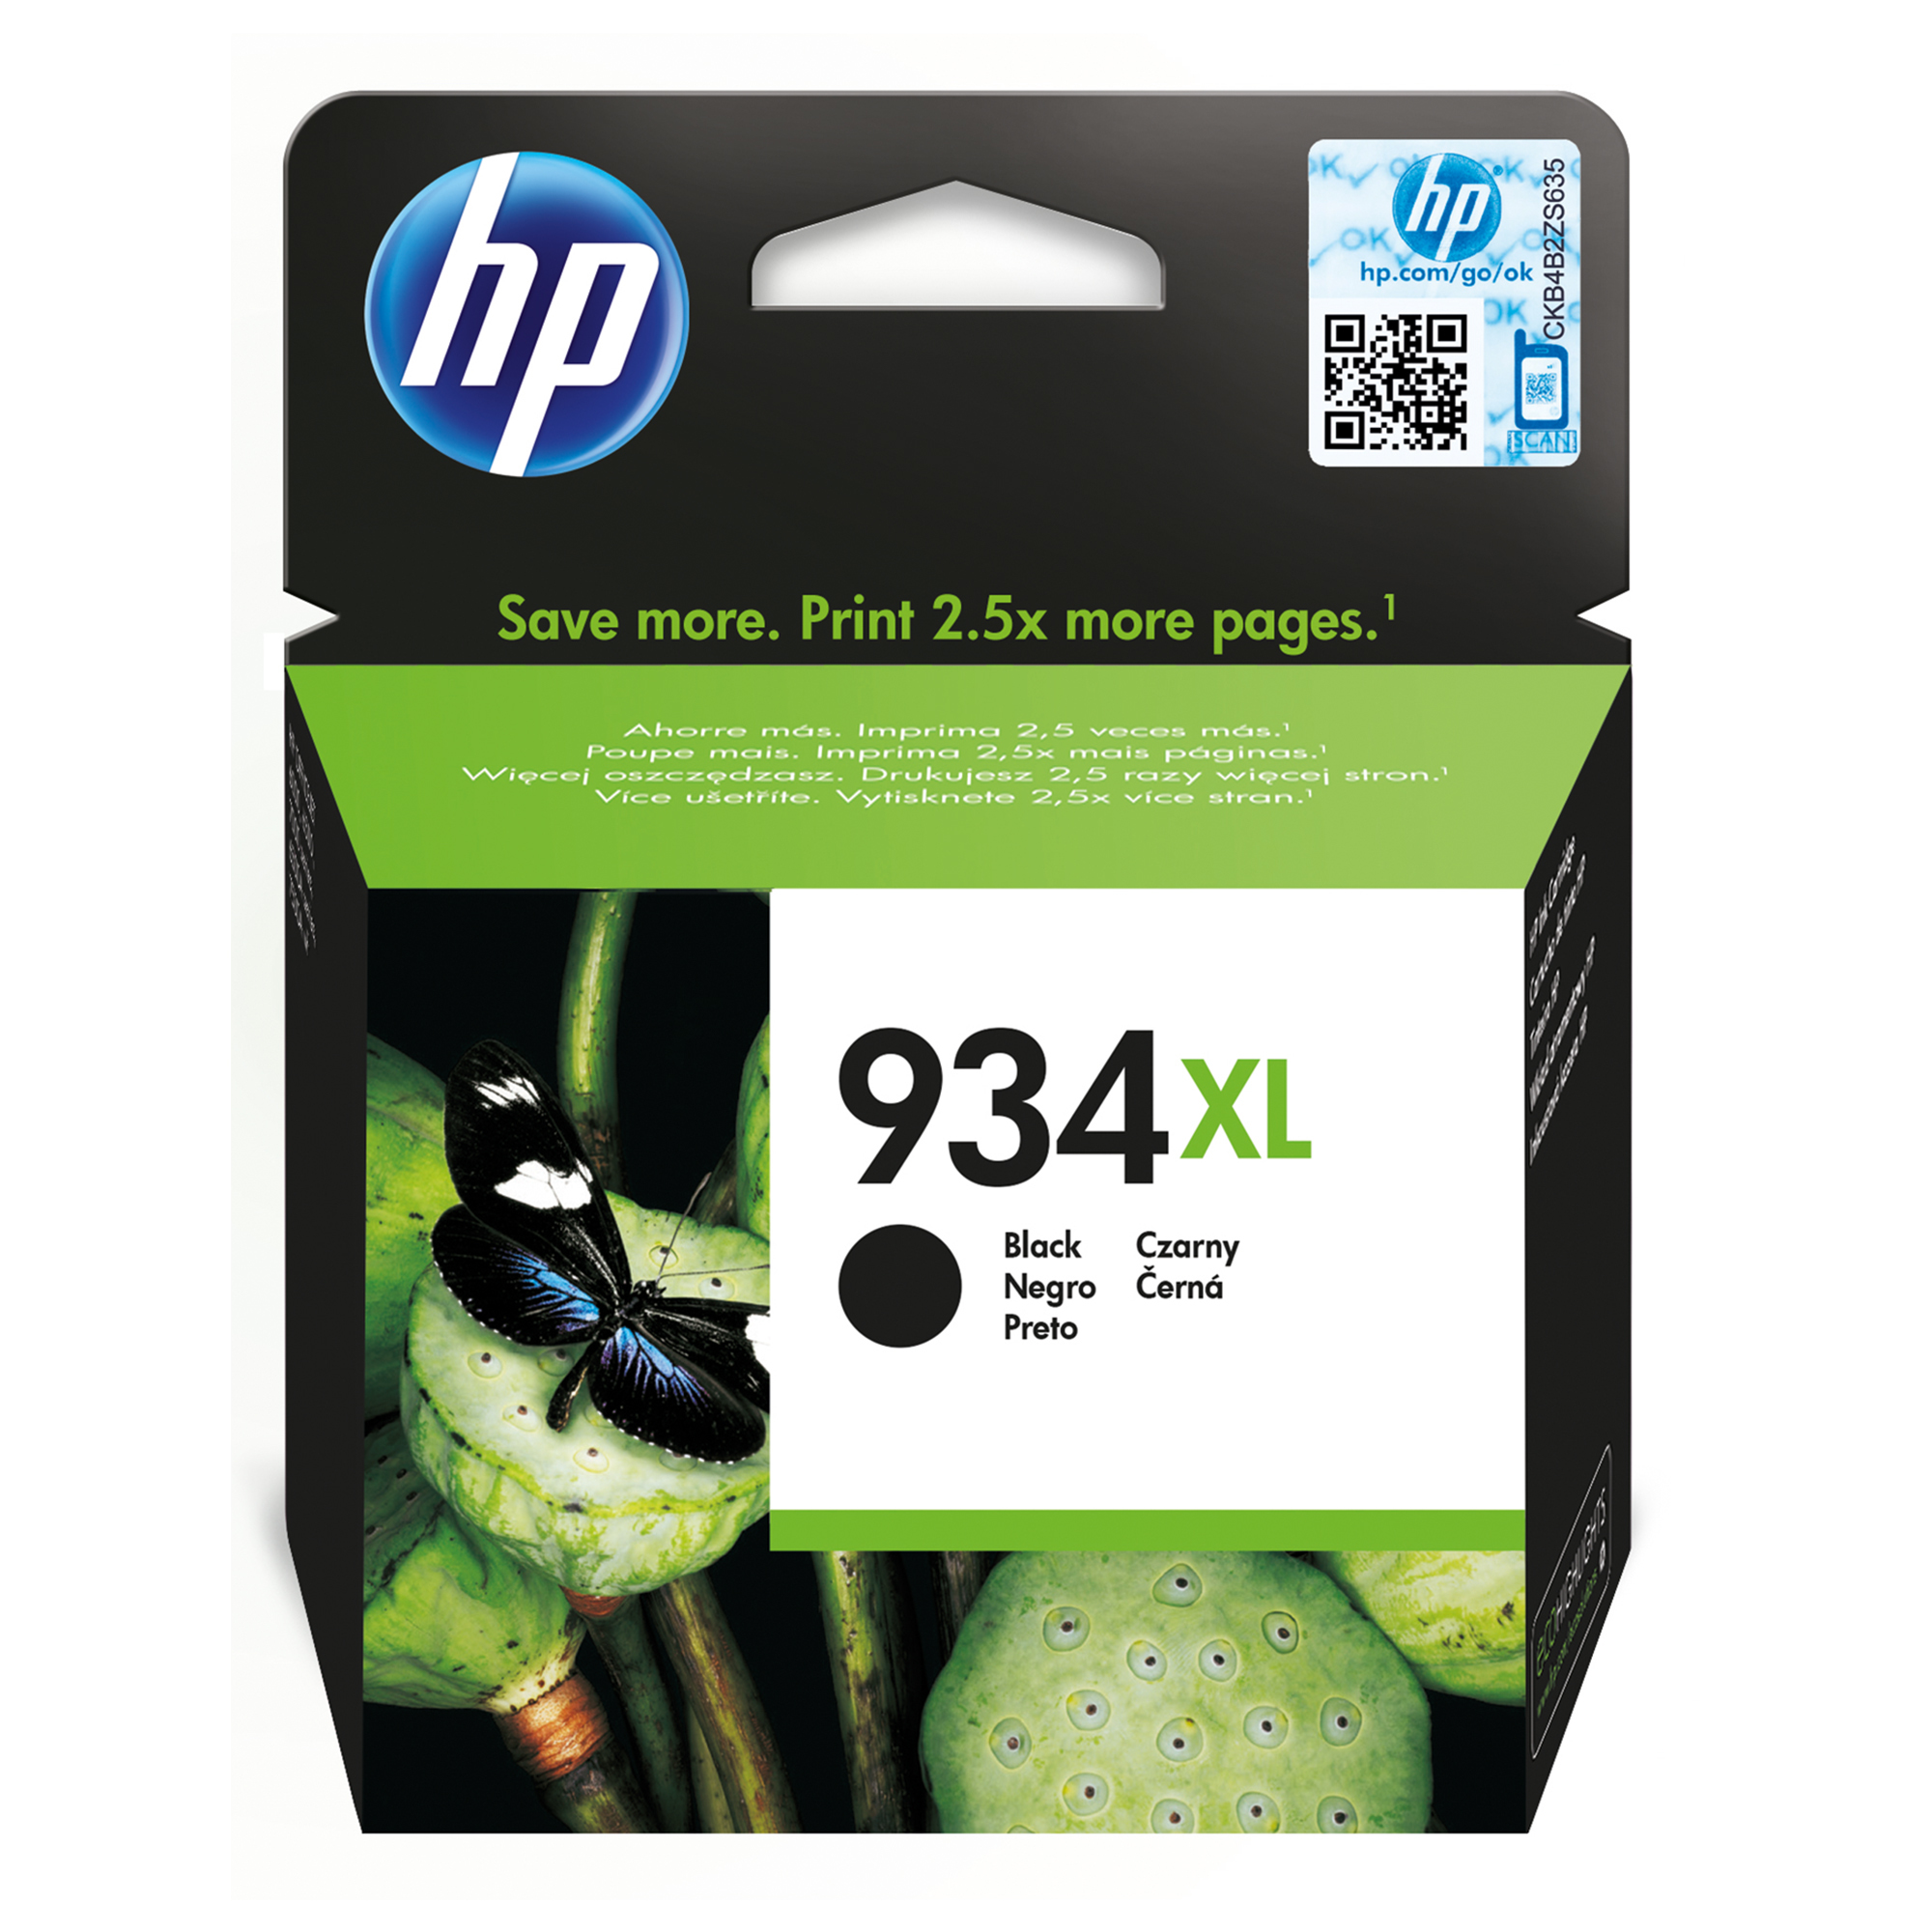 Hpc2p23ae      Hp 934xl Black Ink Cartridge   1000 Pages                                                   - UF01